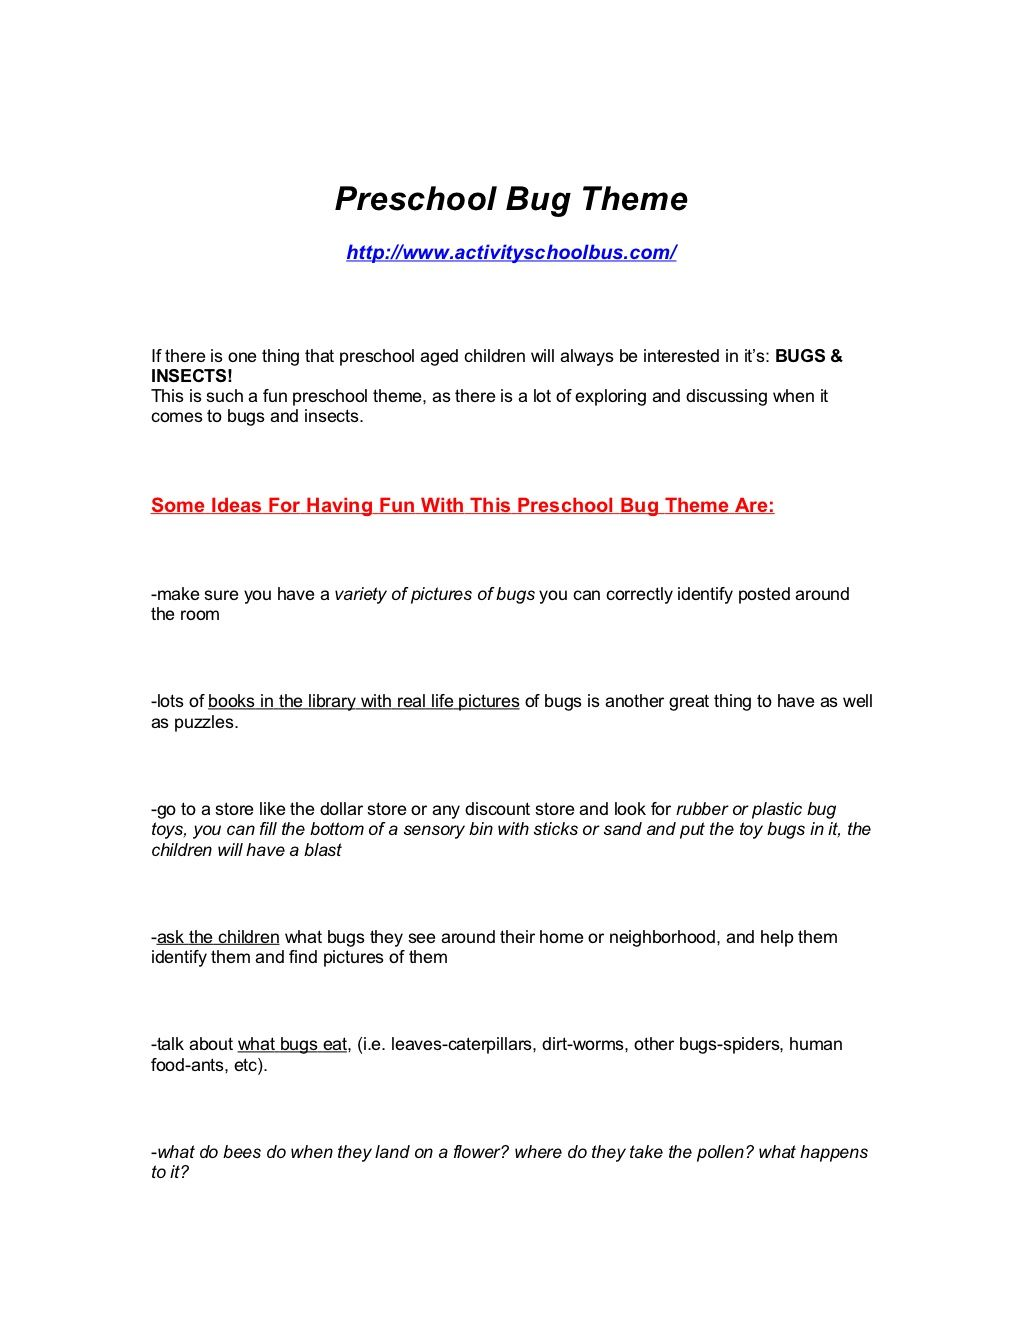 Pre K Bug Insect Theme For Preschoolers By Dane Robinson Via Slideshare